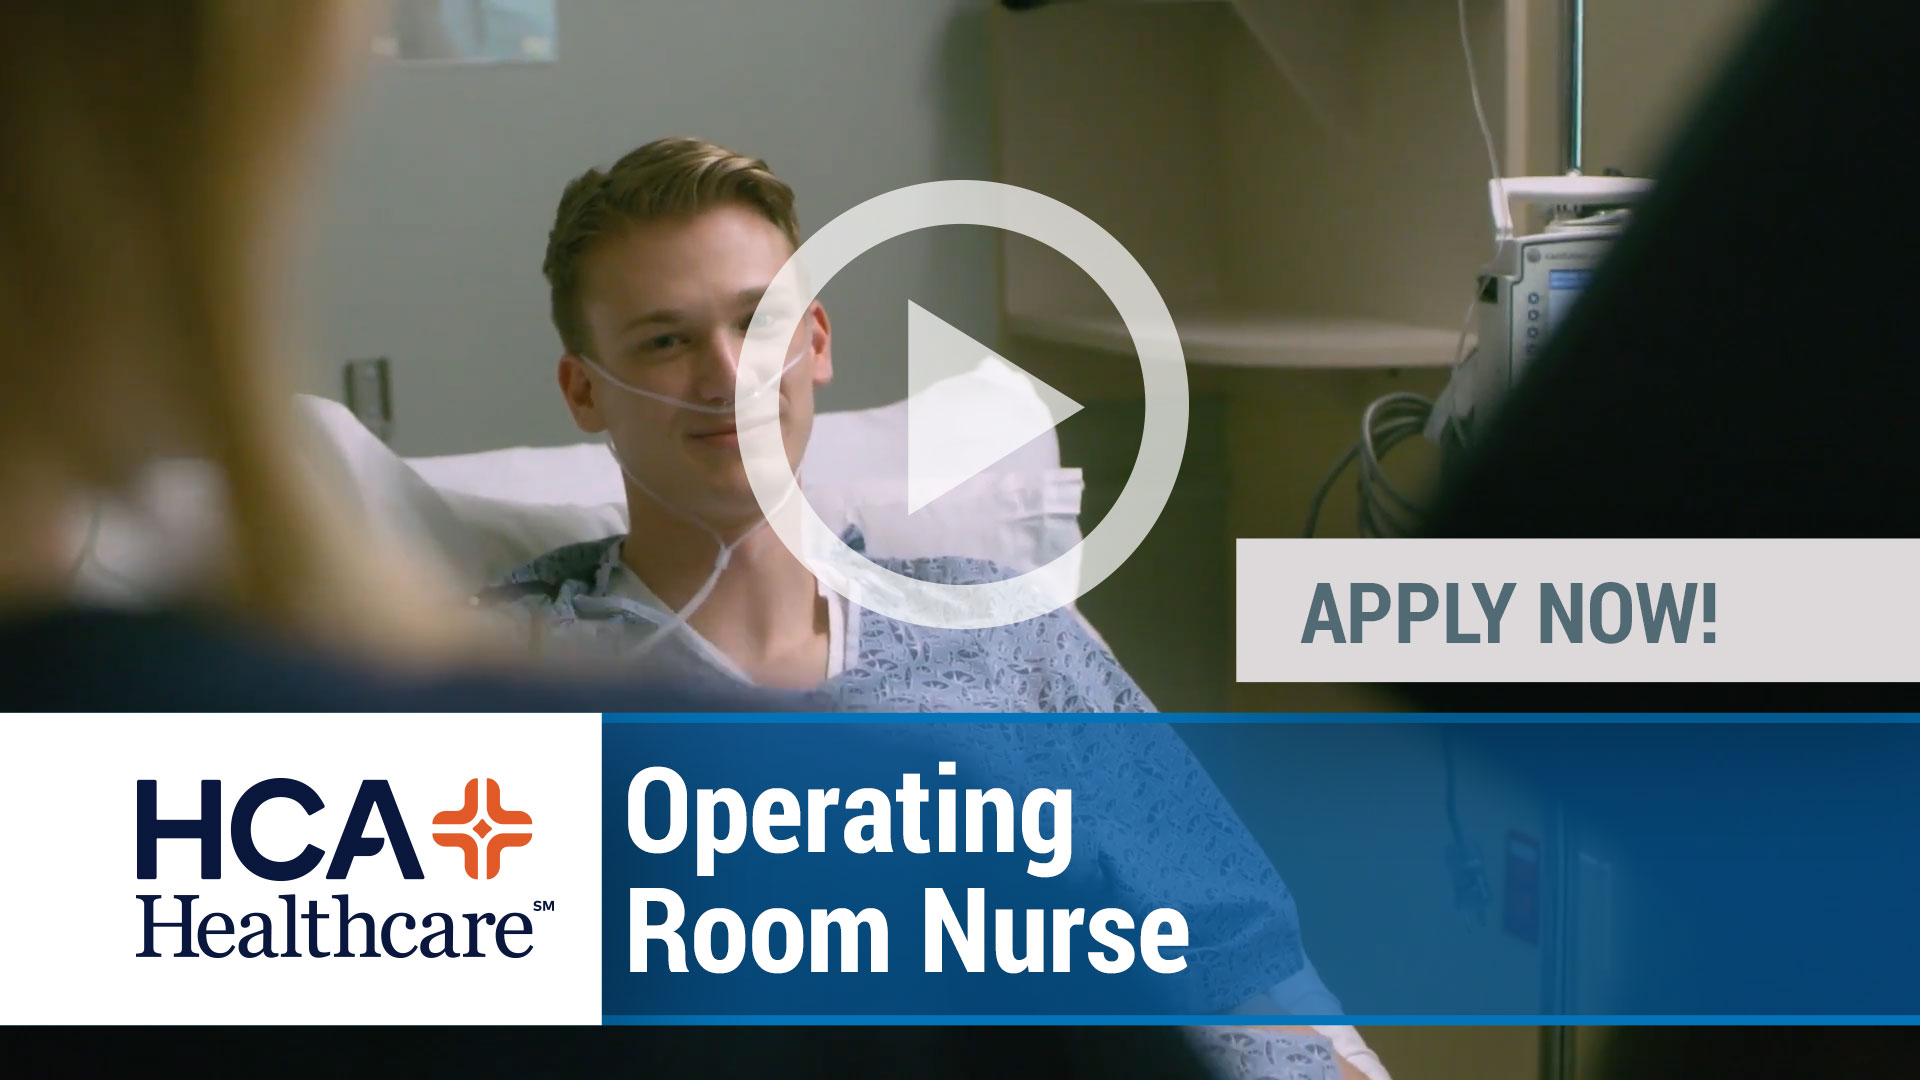 Watch our careers video for available job opening Operating Room Nurse in Sarasota, Florida